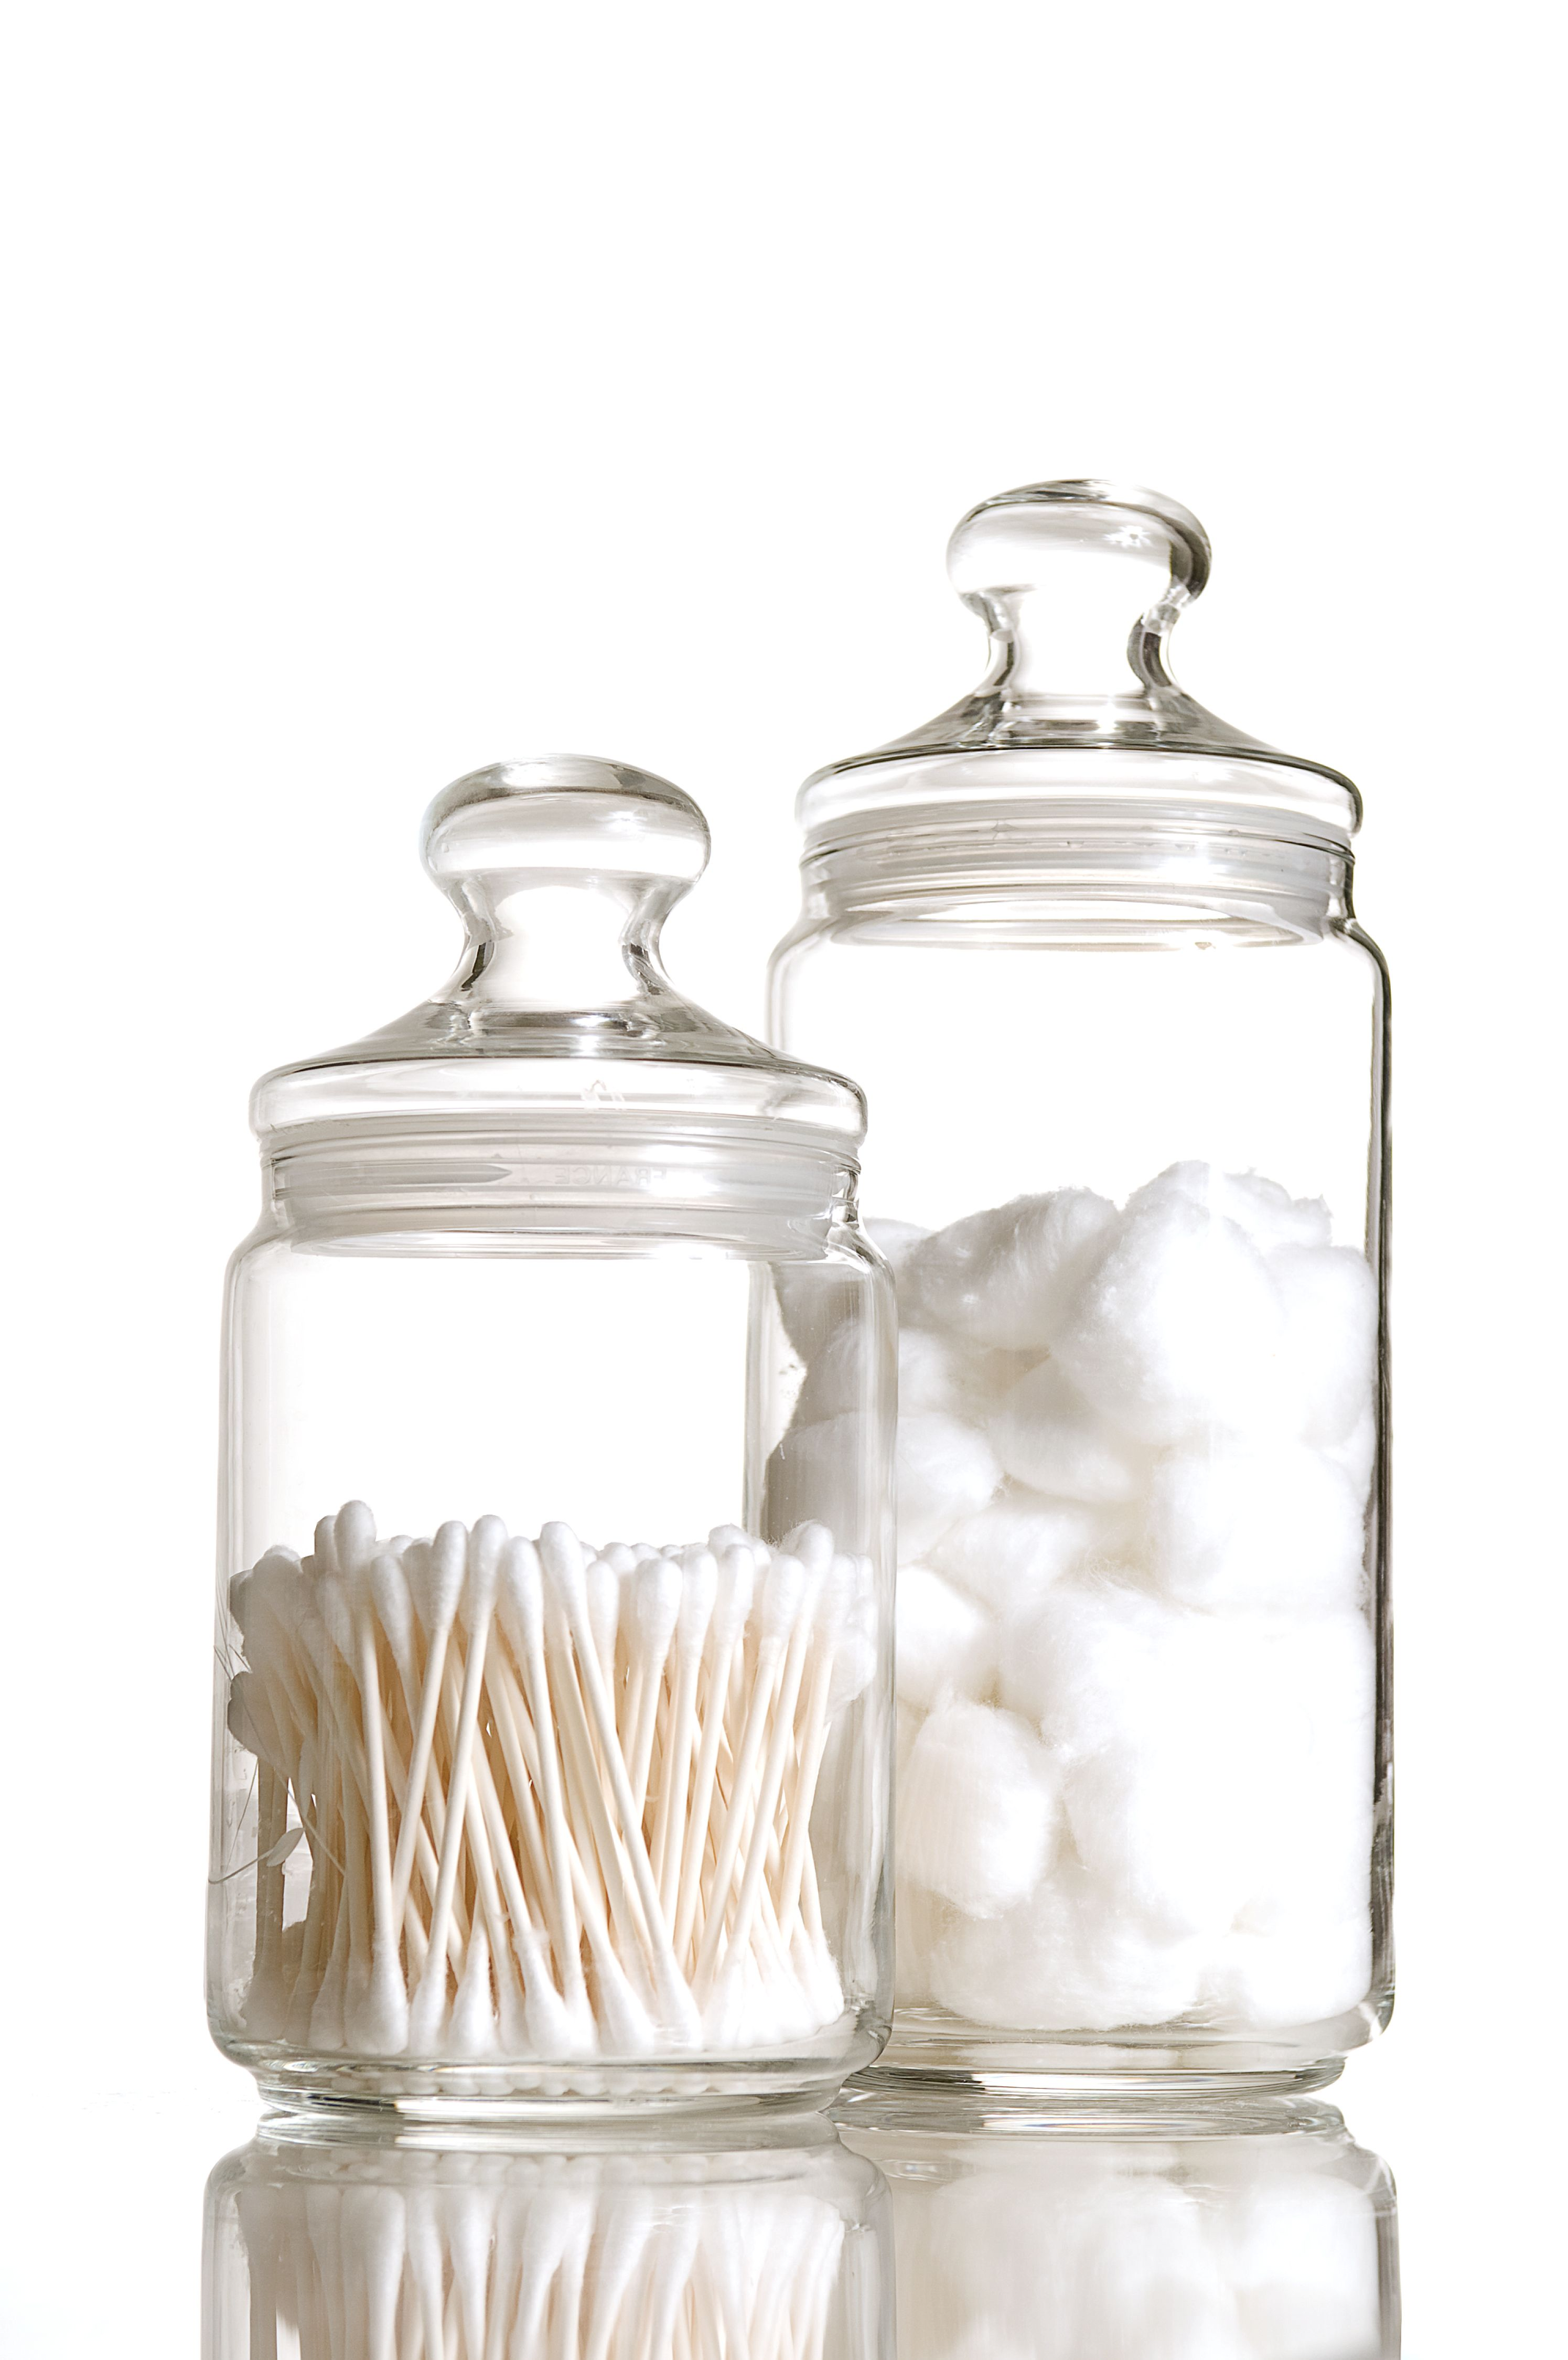 free picture  two  glass  jars  sterile  cotton  balls  tips